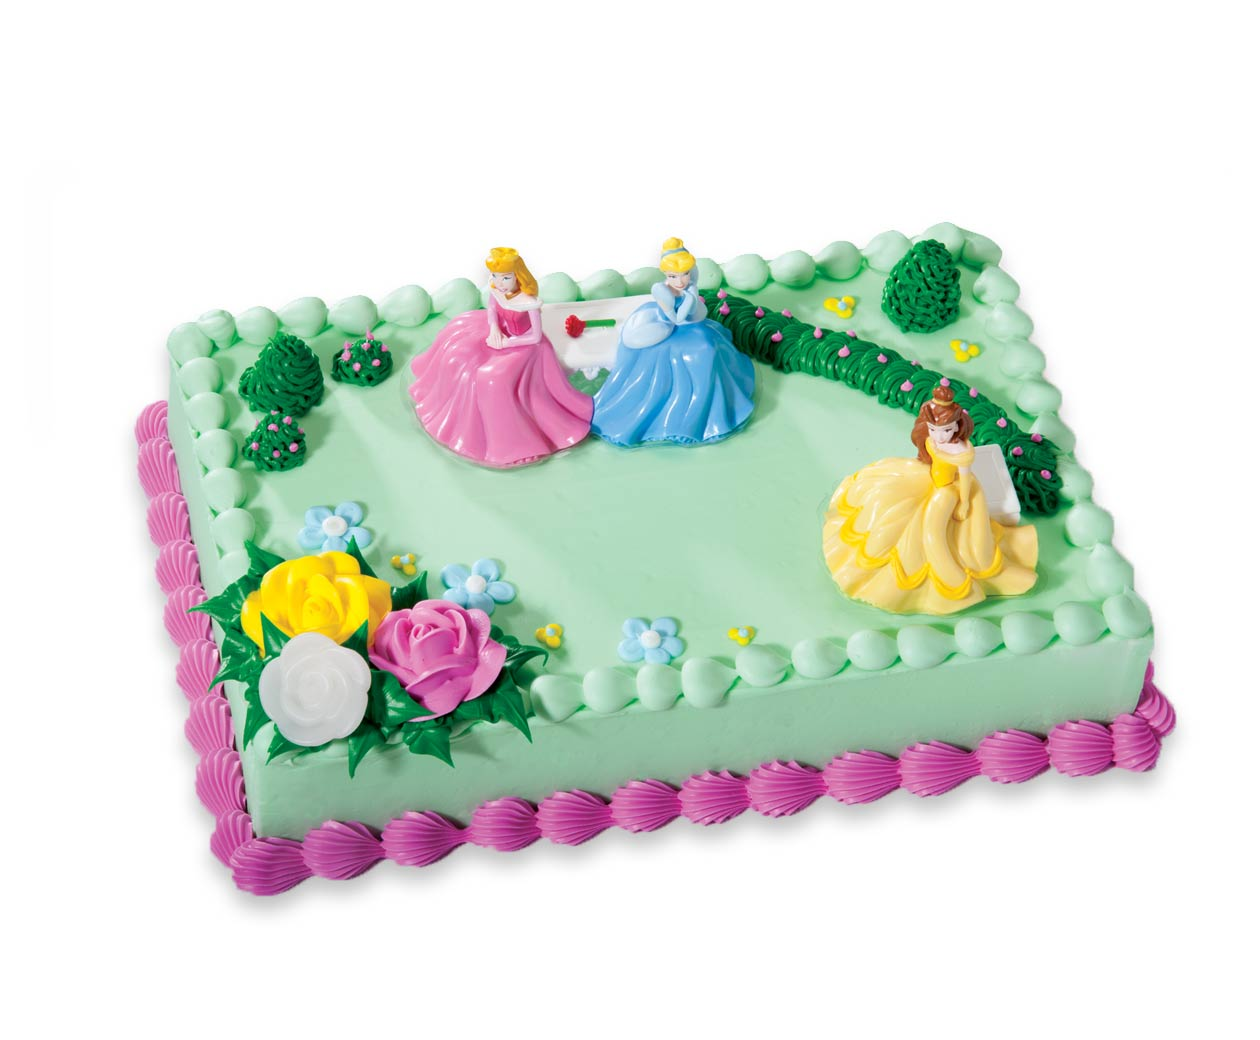 Cake Designs For 4 Year Girl : Order a Kid s Birthday Cake at Cold Stone Creamery